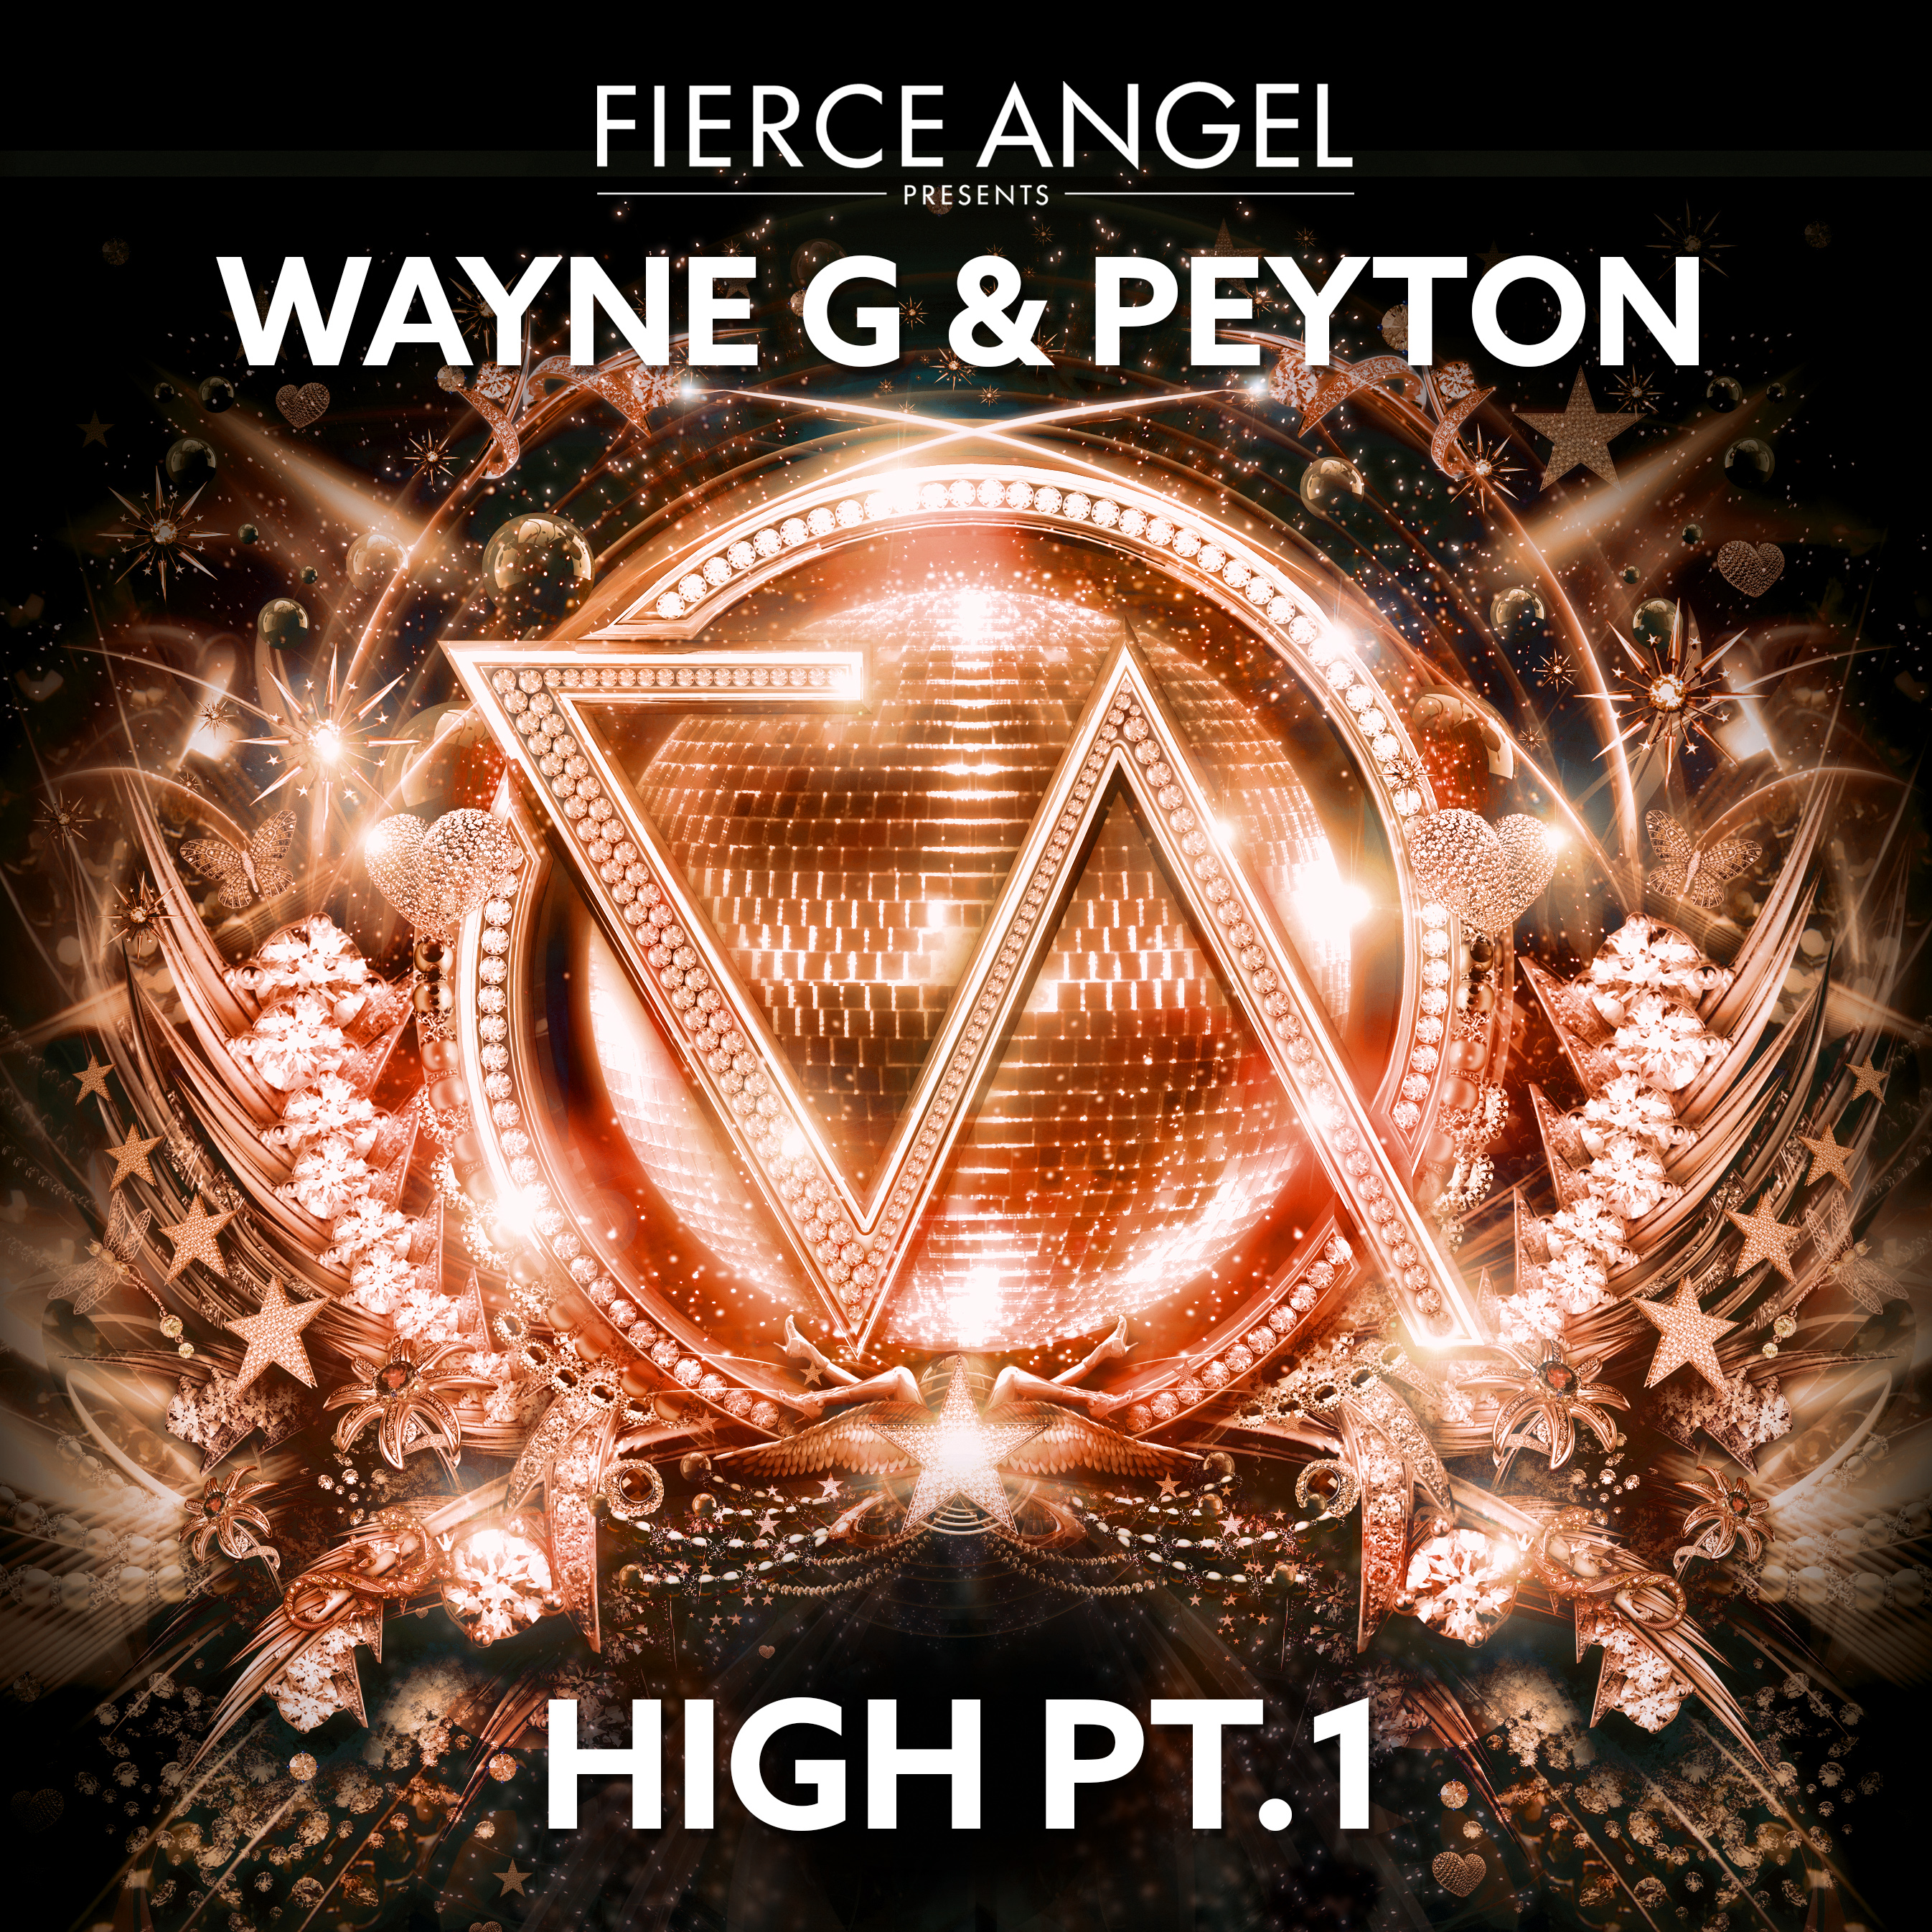 Wayne G & Peyton - High Pt.1